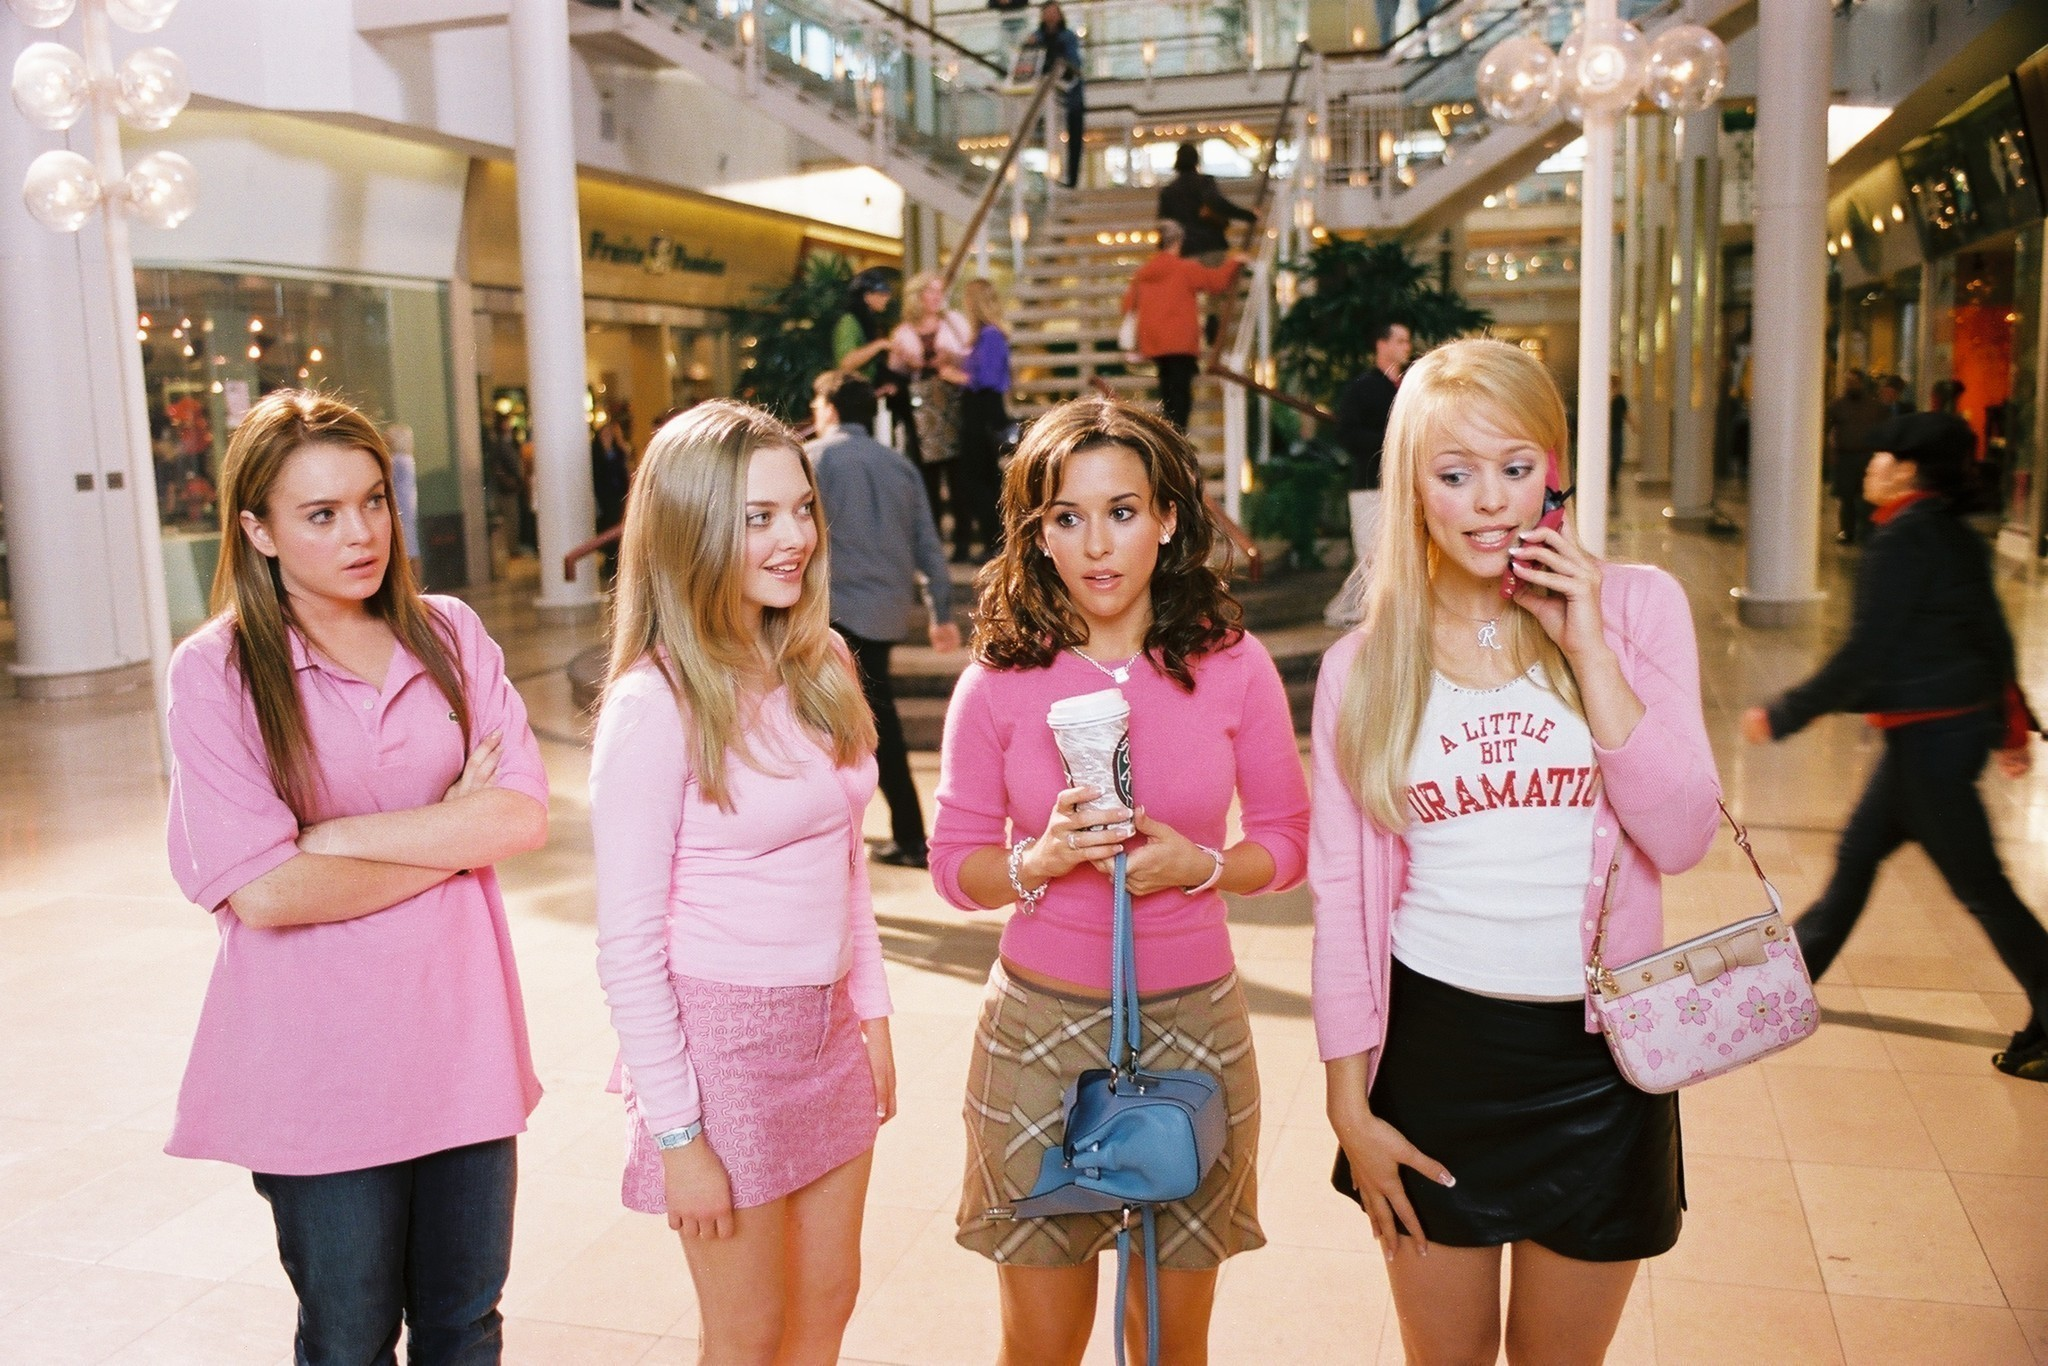 Judge tosses 'Mean Girls' fraud case after trial